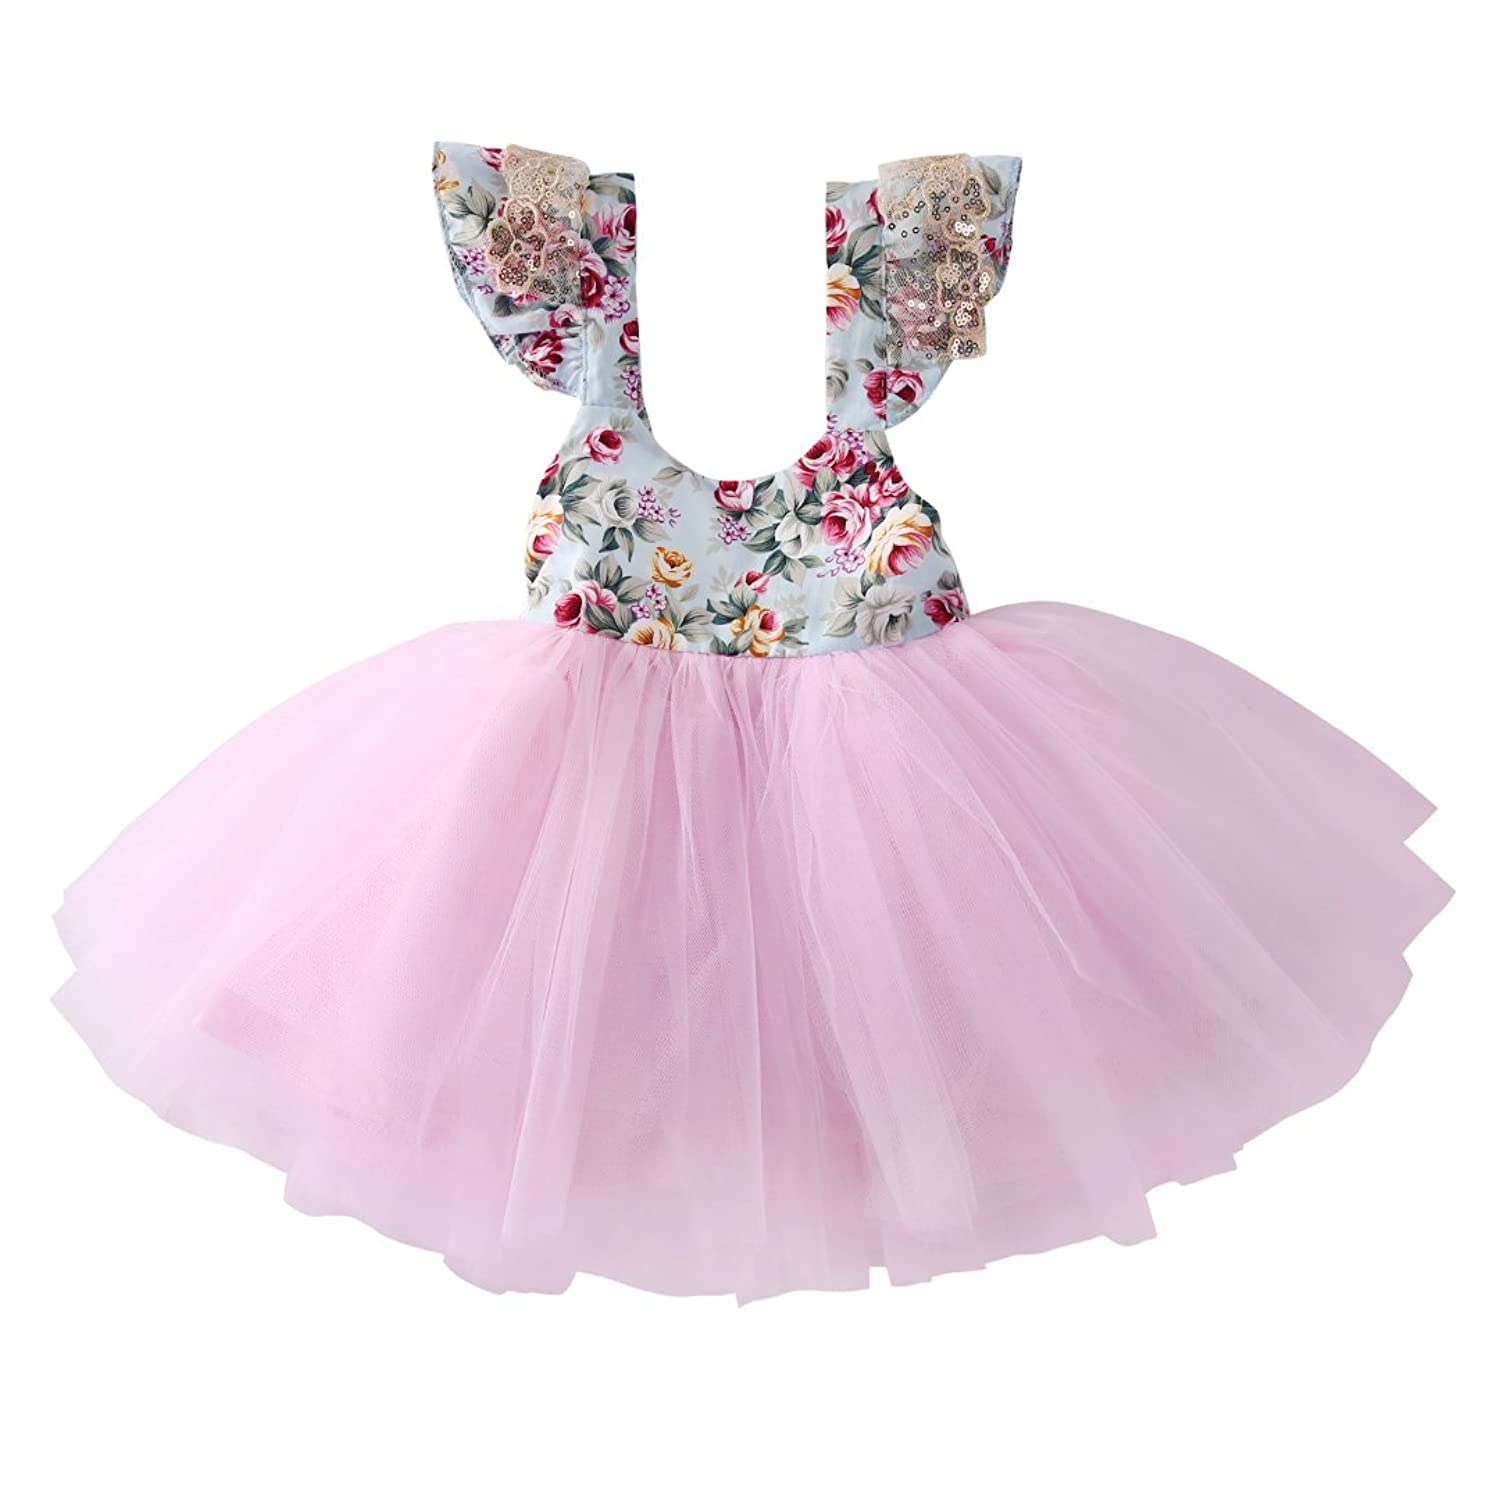 f964434d516 Newborn Toddler Baby Girls Floral Dress Party Ball Gown Lace Tutu Formal Dresses  Sundress  5WefJ0613461  -  12.99